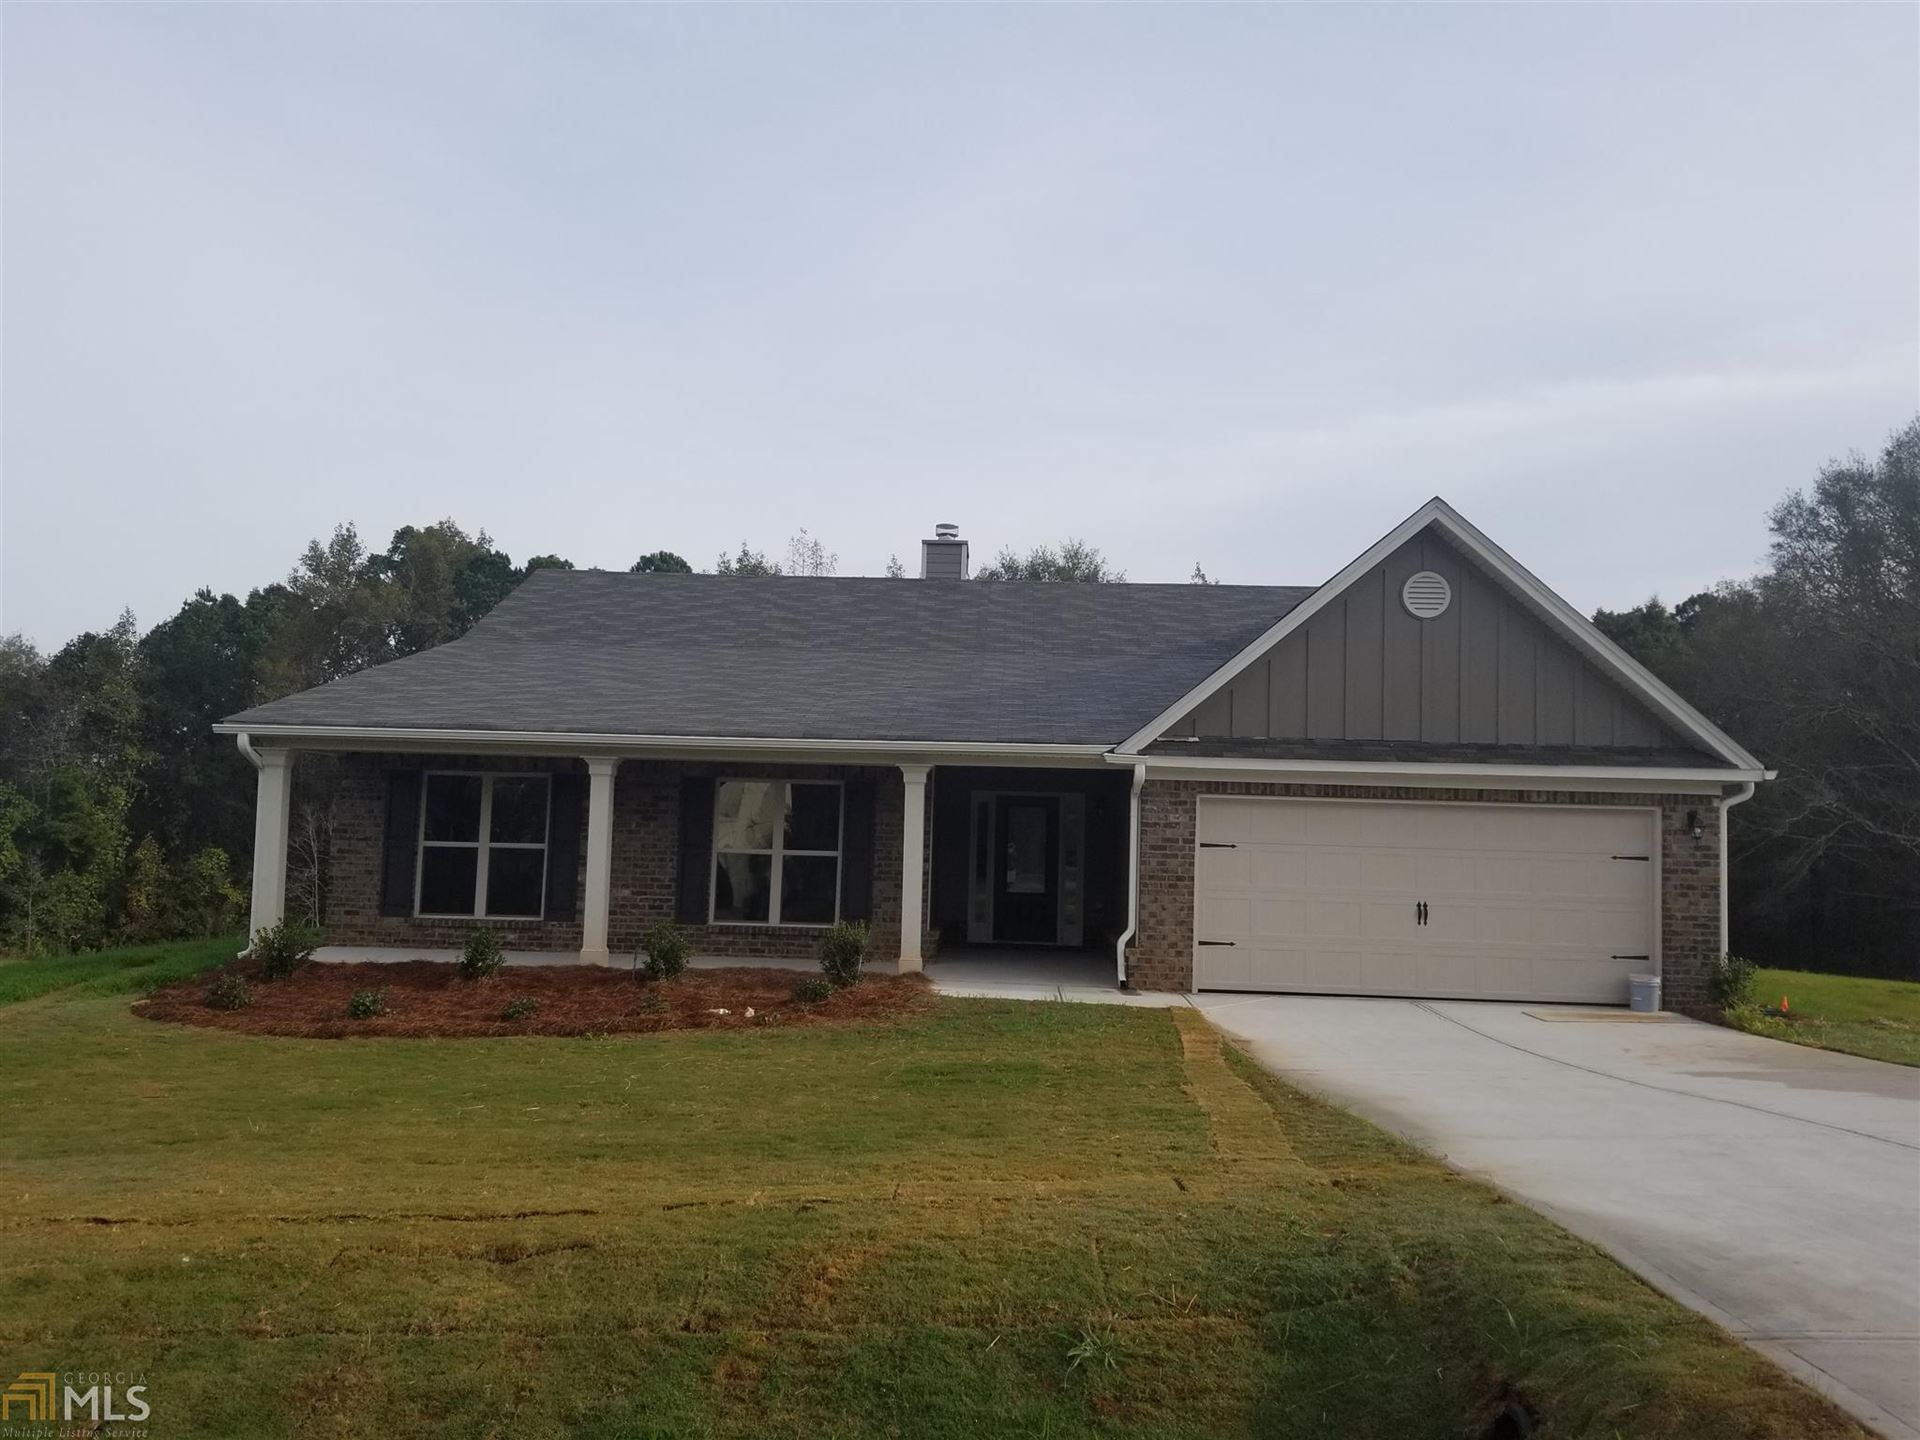 267 Heartland Cir, Winder, GA 30680 - #: 8912860